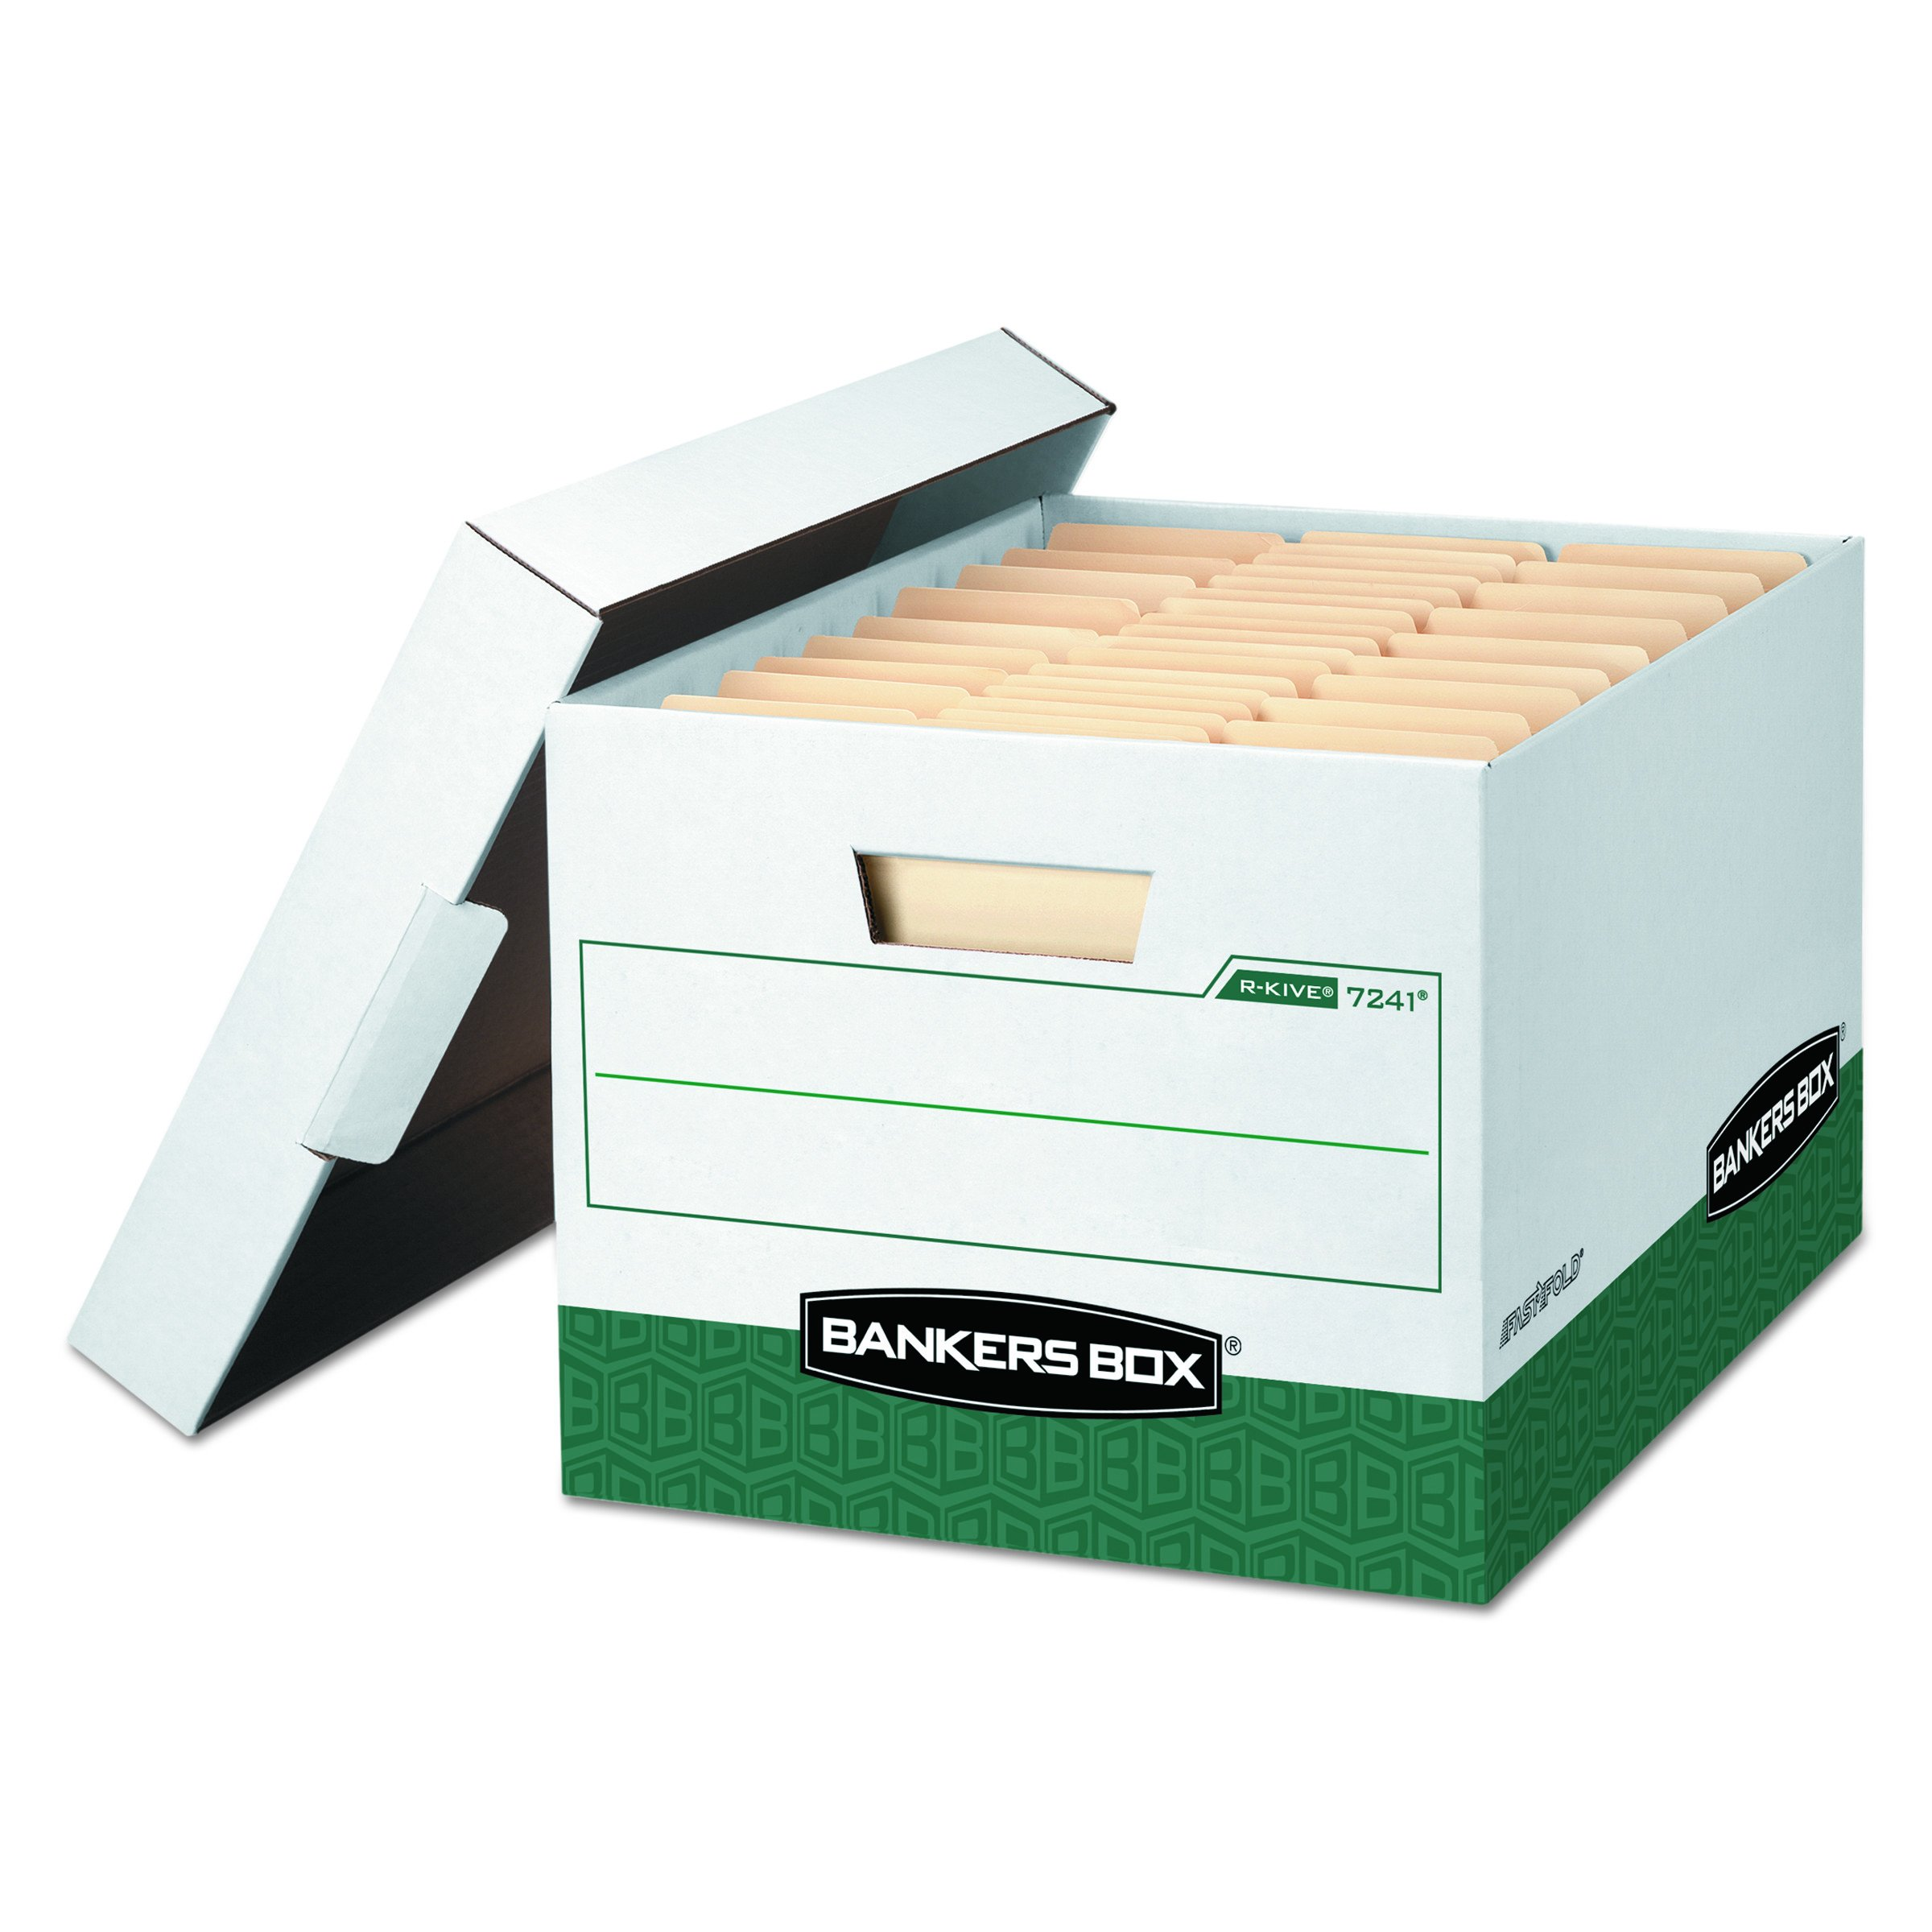 Bankers Box 07241 R-KIVE Max Storage Box, Letter/Legal, Locking Lid, White/Green (Case of 12)